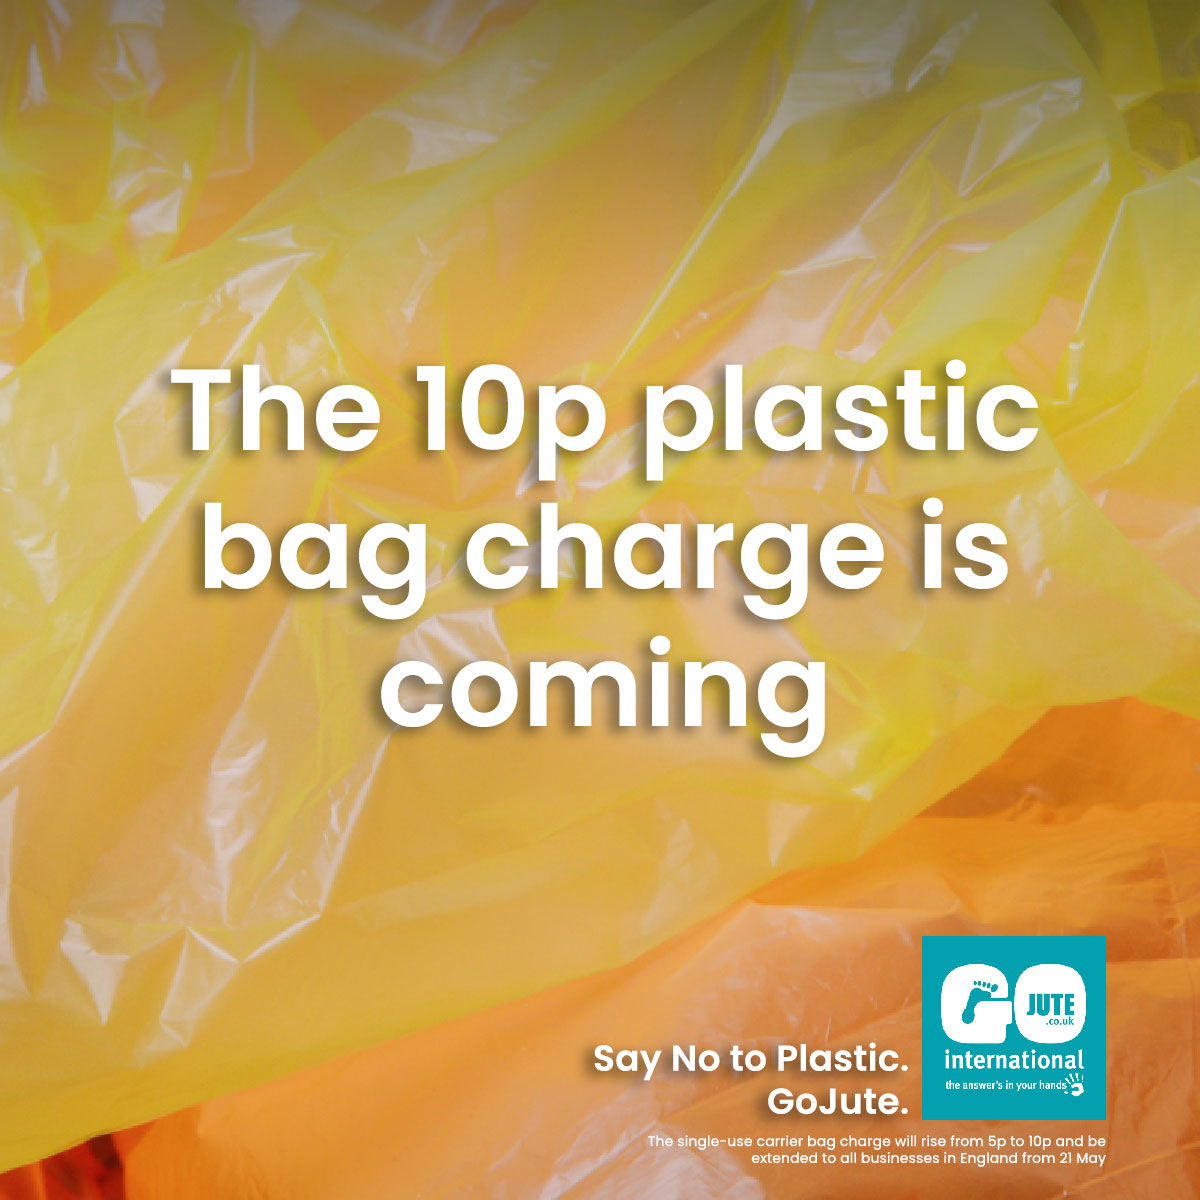 The 10p plastic bag charge is coming